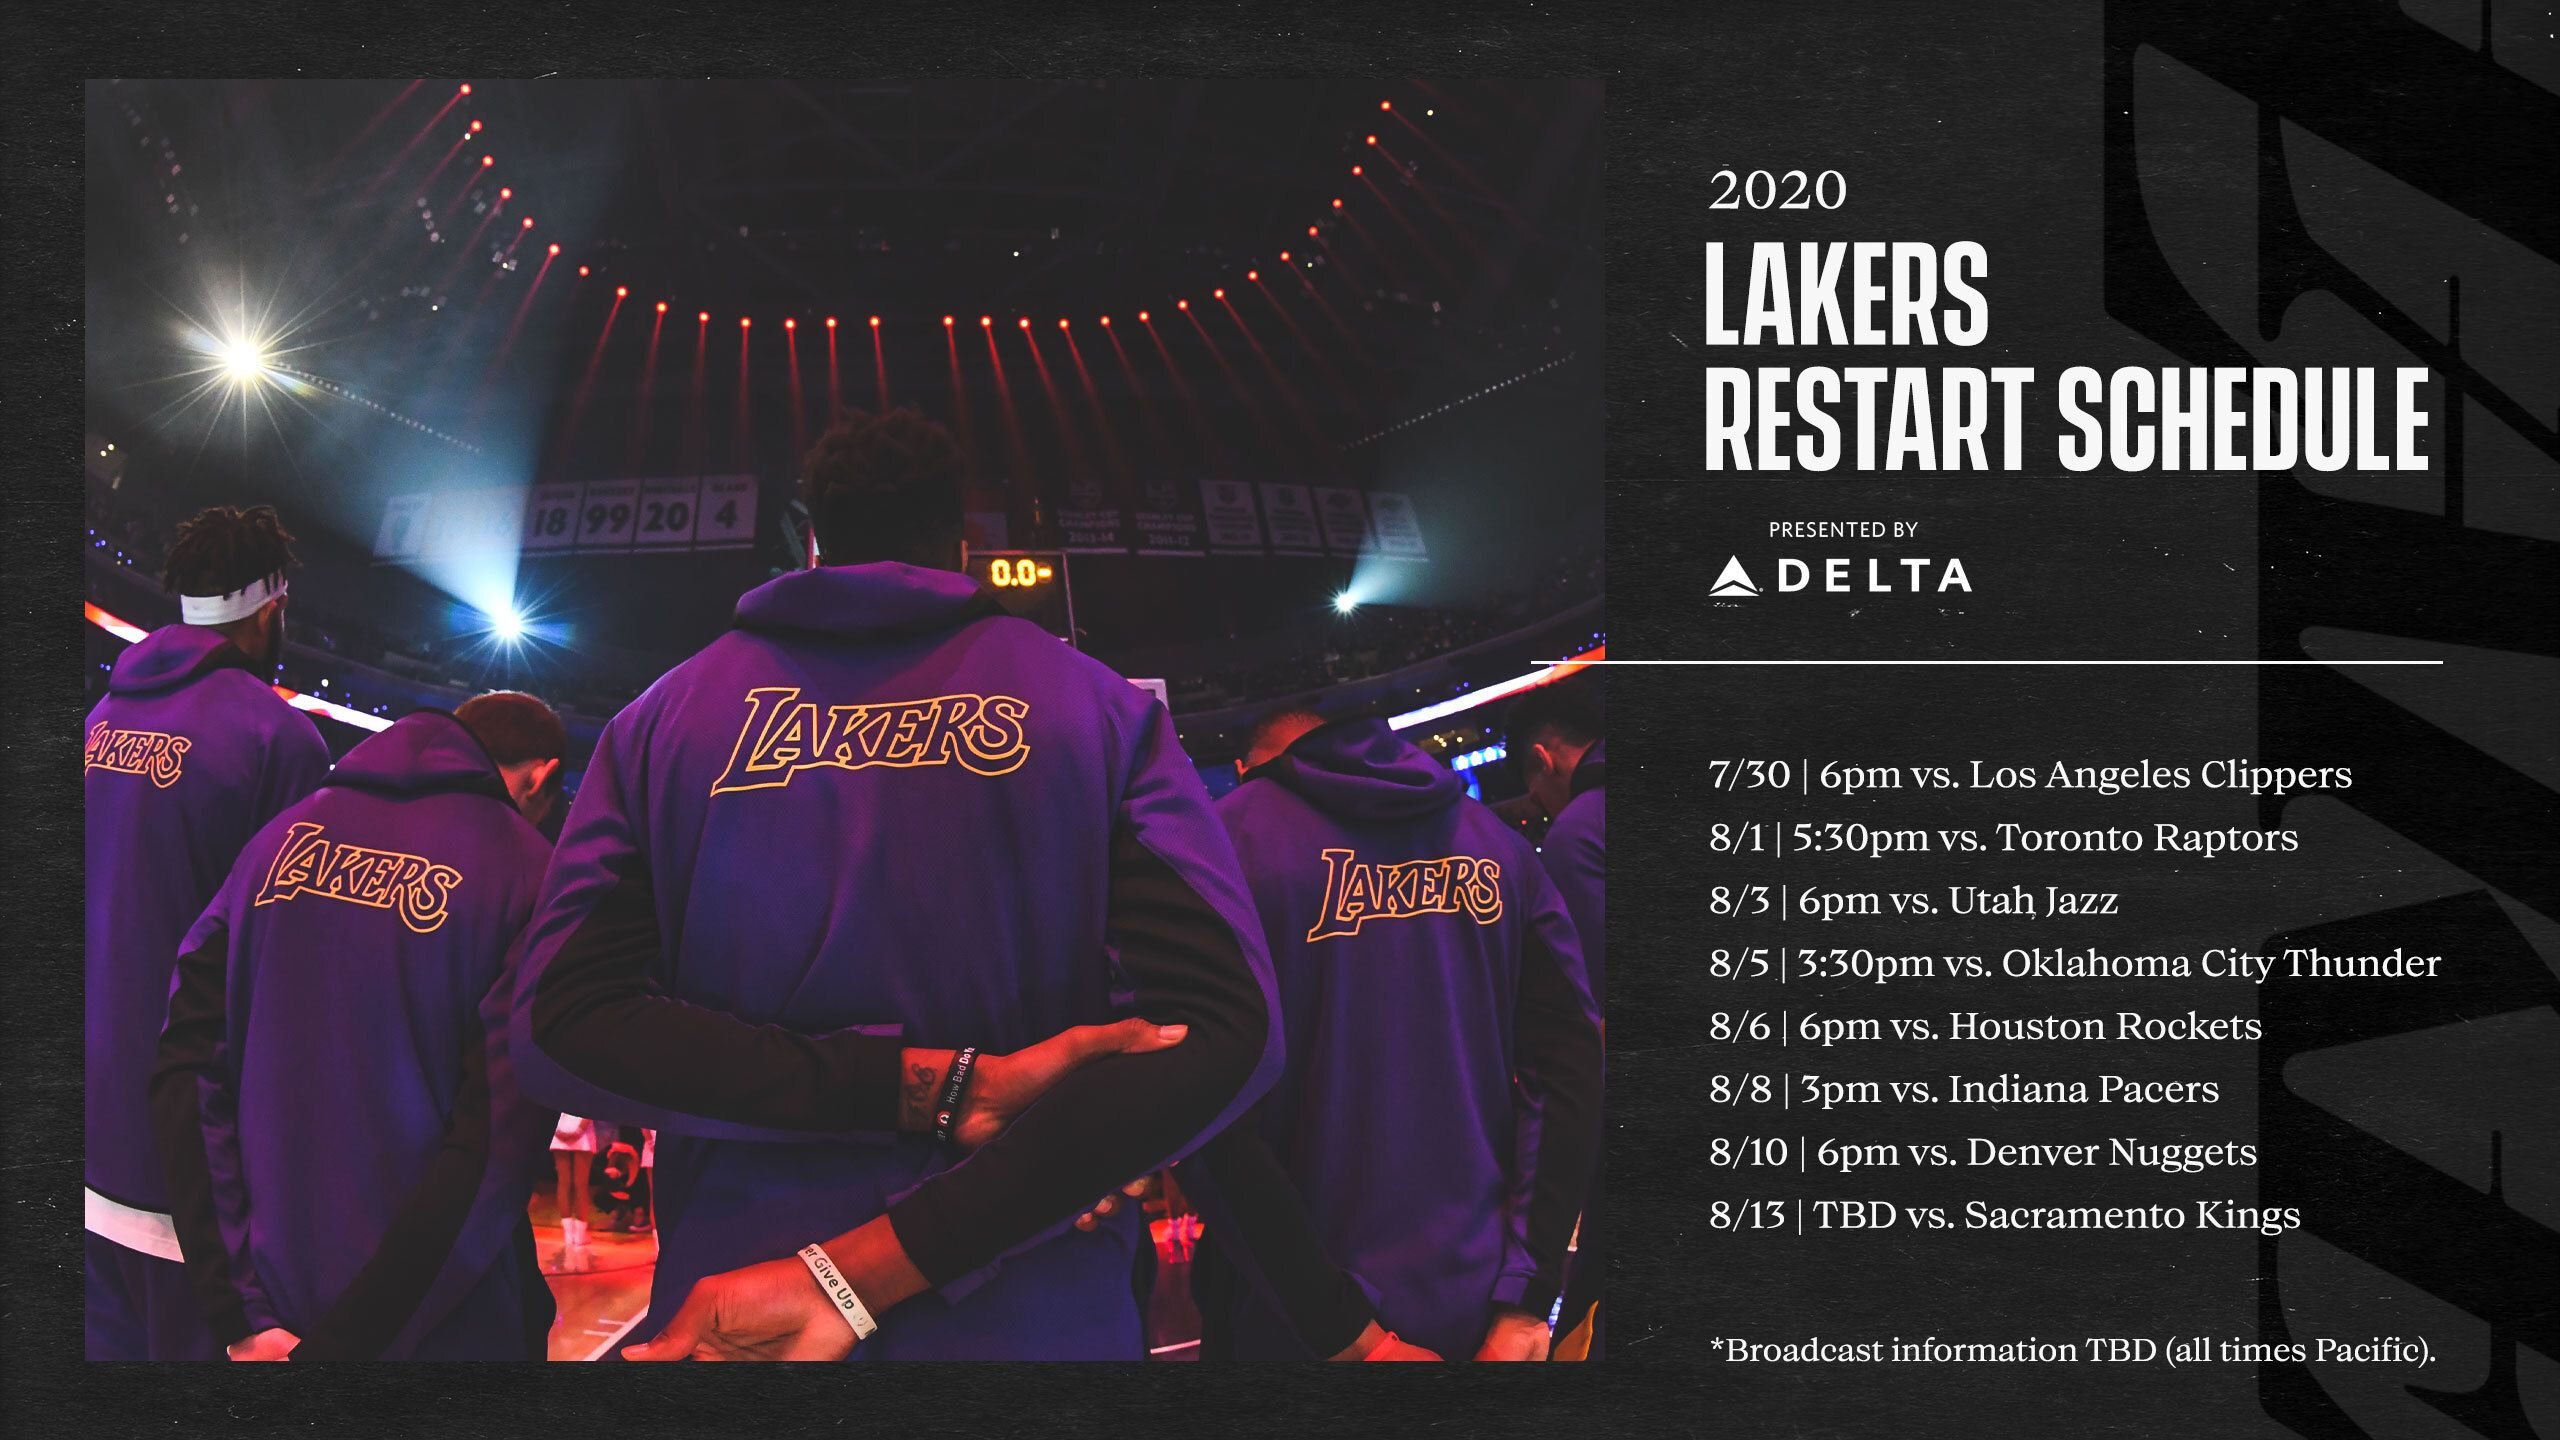 Lakers Wallpapers And Infographics Los Angeles Lakers In 2020 Lakers Wallpaper Kobe Bryant Wallpaper Lakers